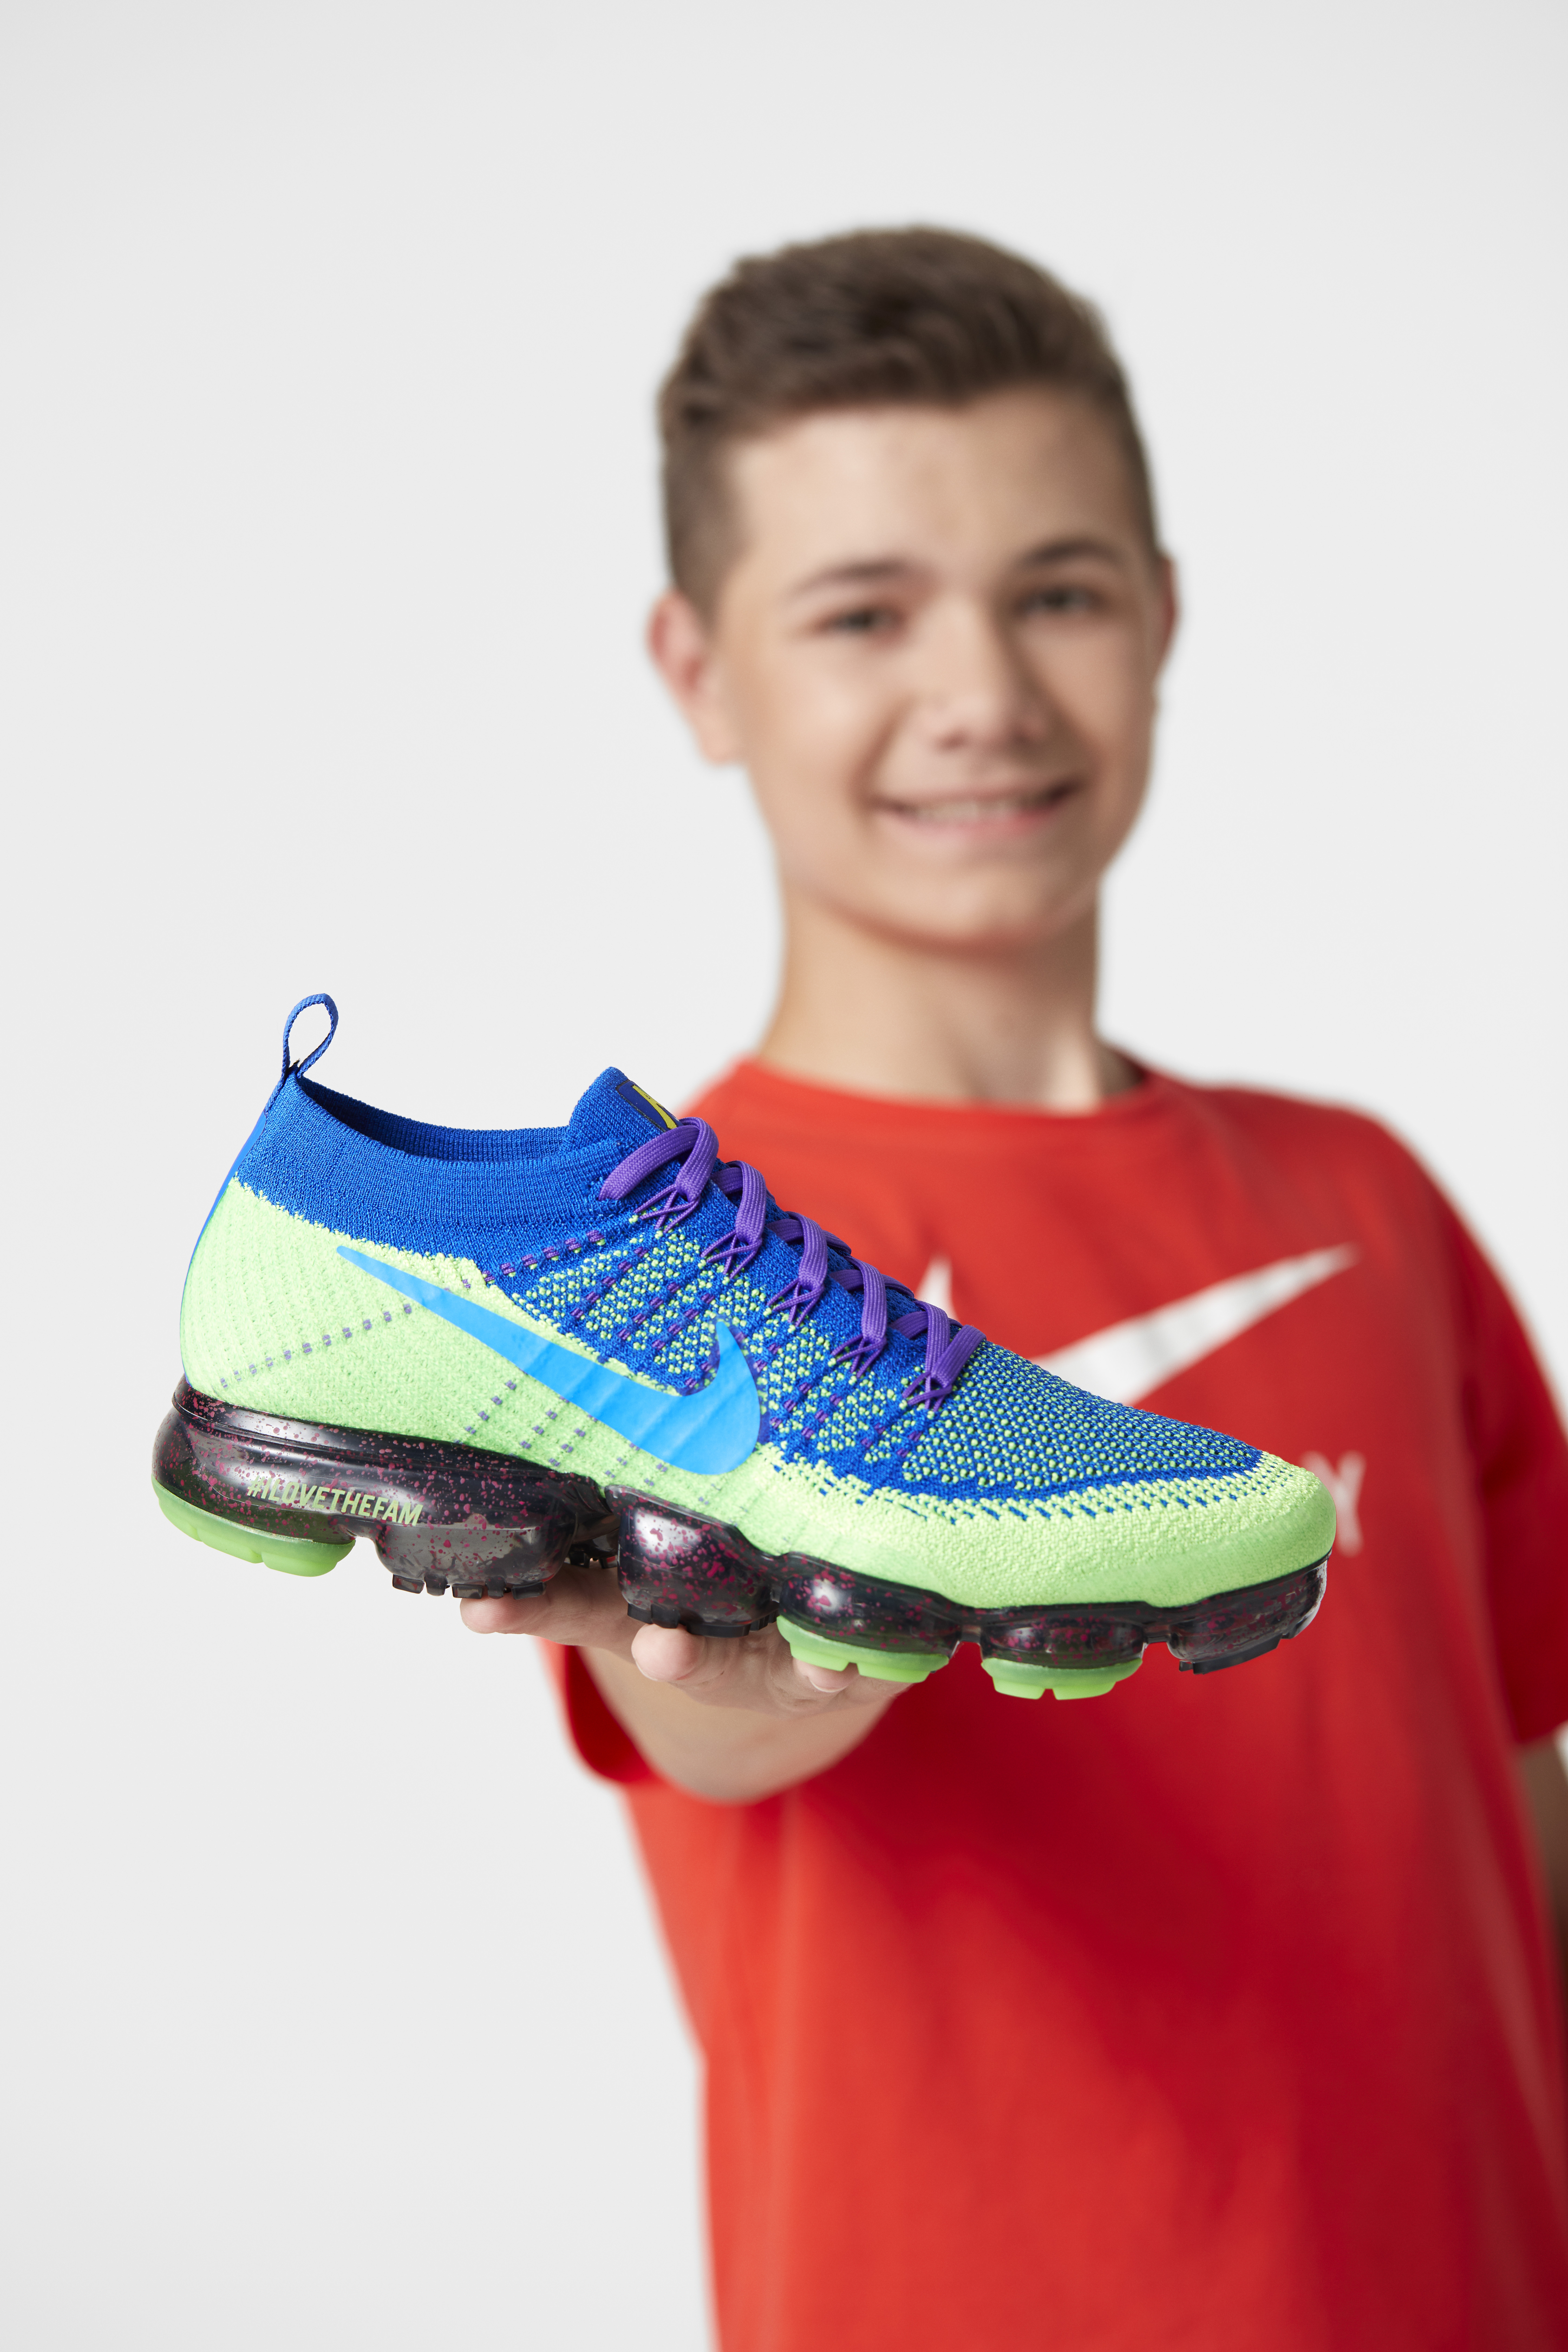 f6c2154e02 Fifteen year old Andrew Merydith's Doernbecher Freestyle Collection  includes a Nike Air VaporMax Flyknit, a hat and a hoodie. (Dan Root)